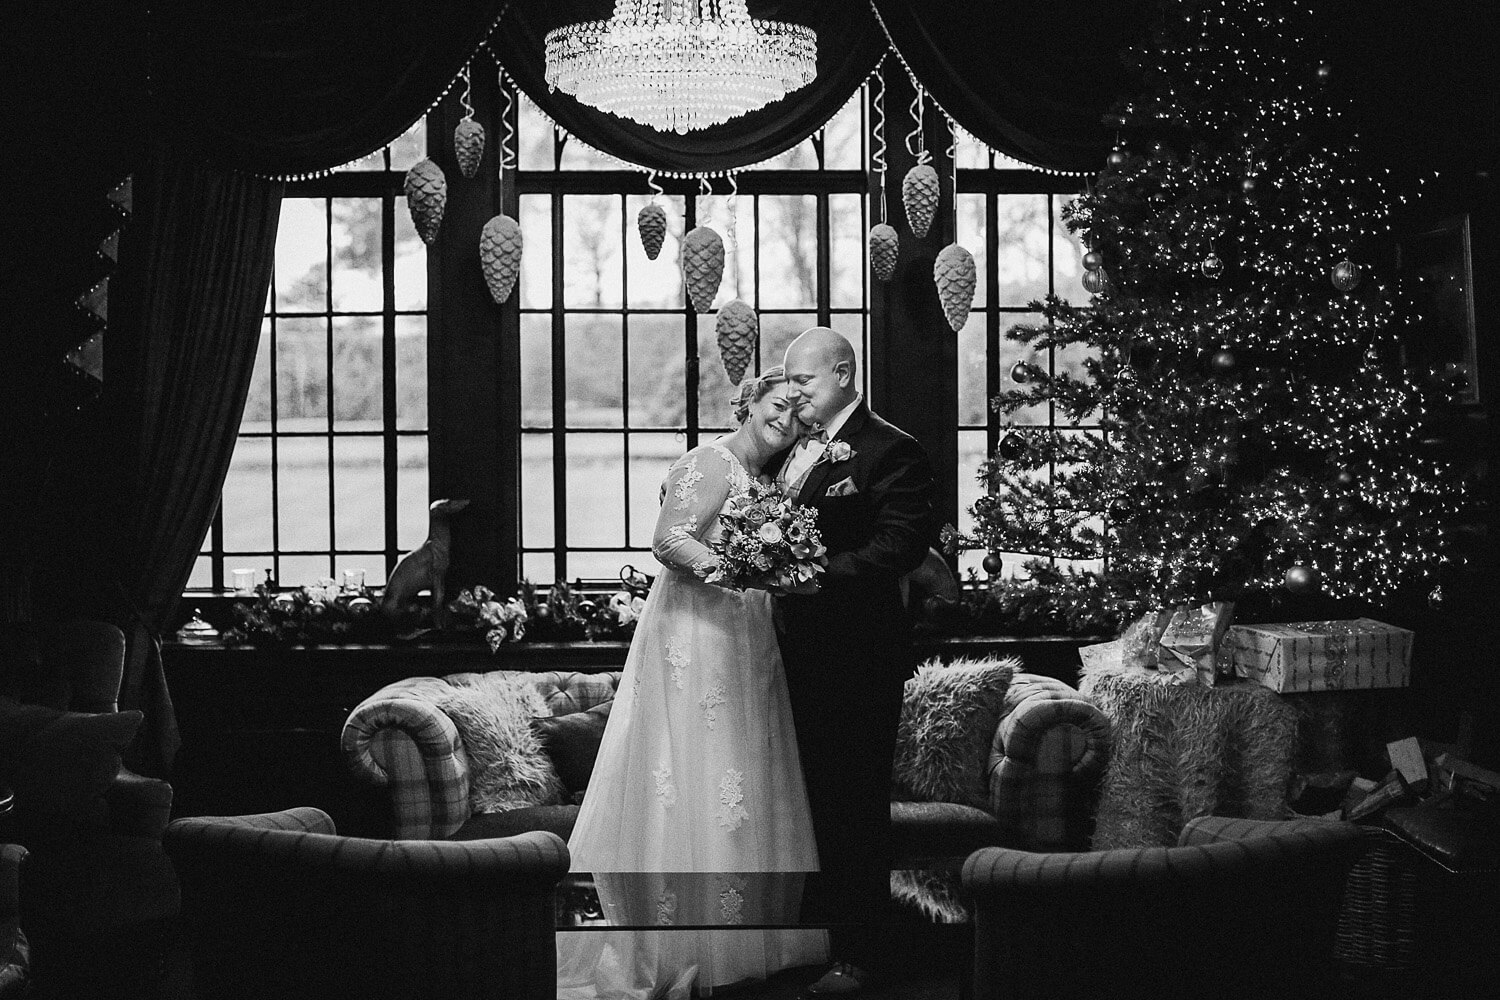 EAVES HALL WEDDING PHOTOGRAPHY: MAGICAL WINTER WEDDING